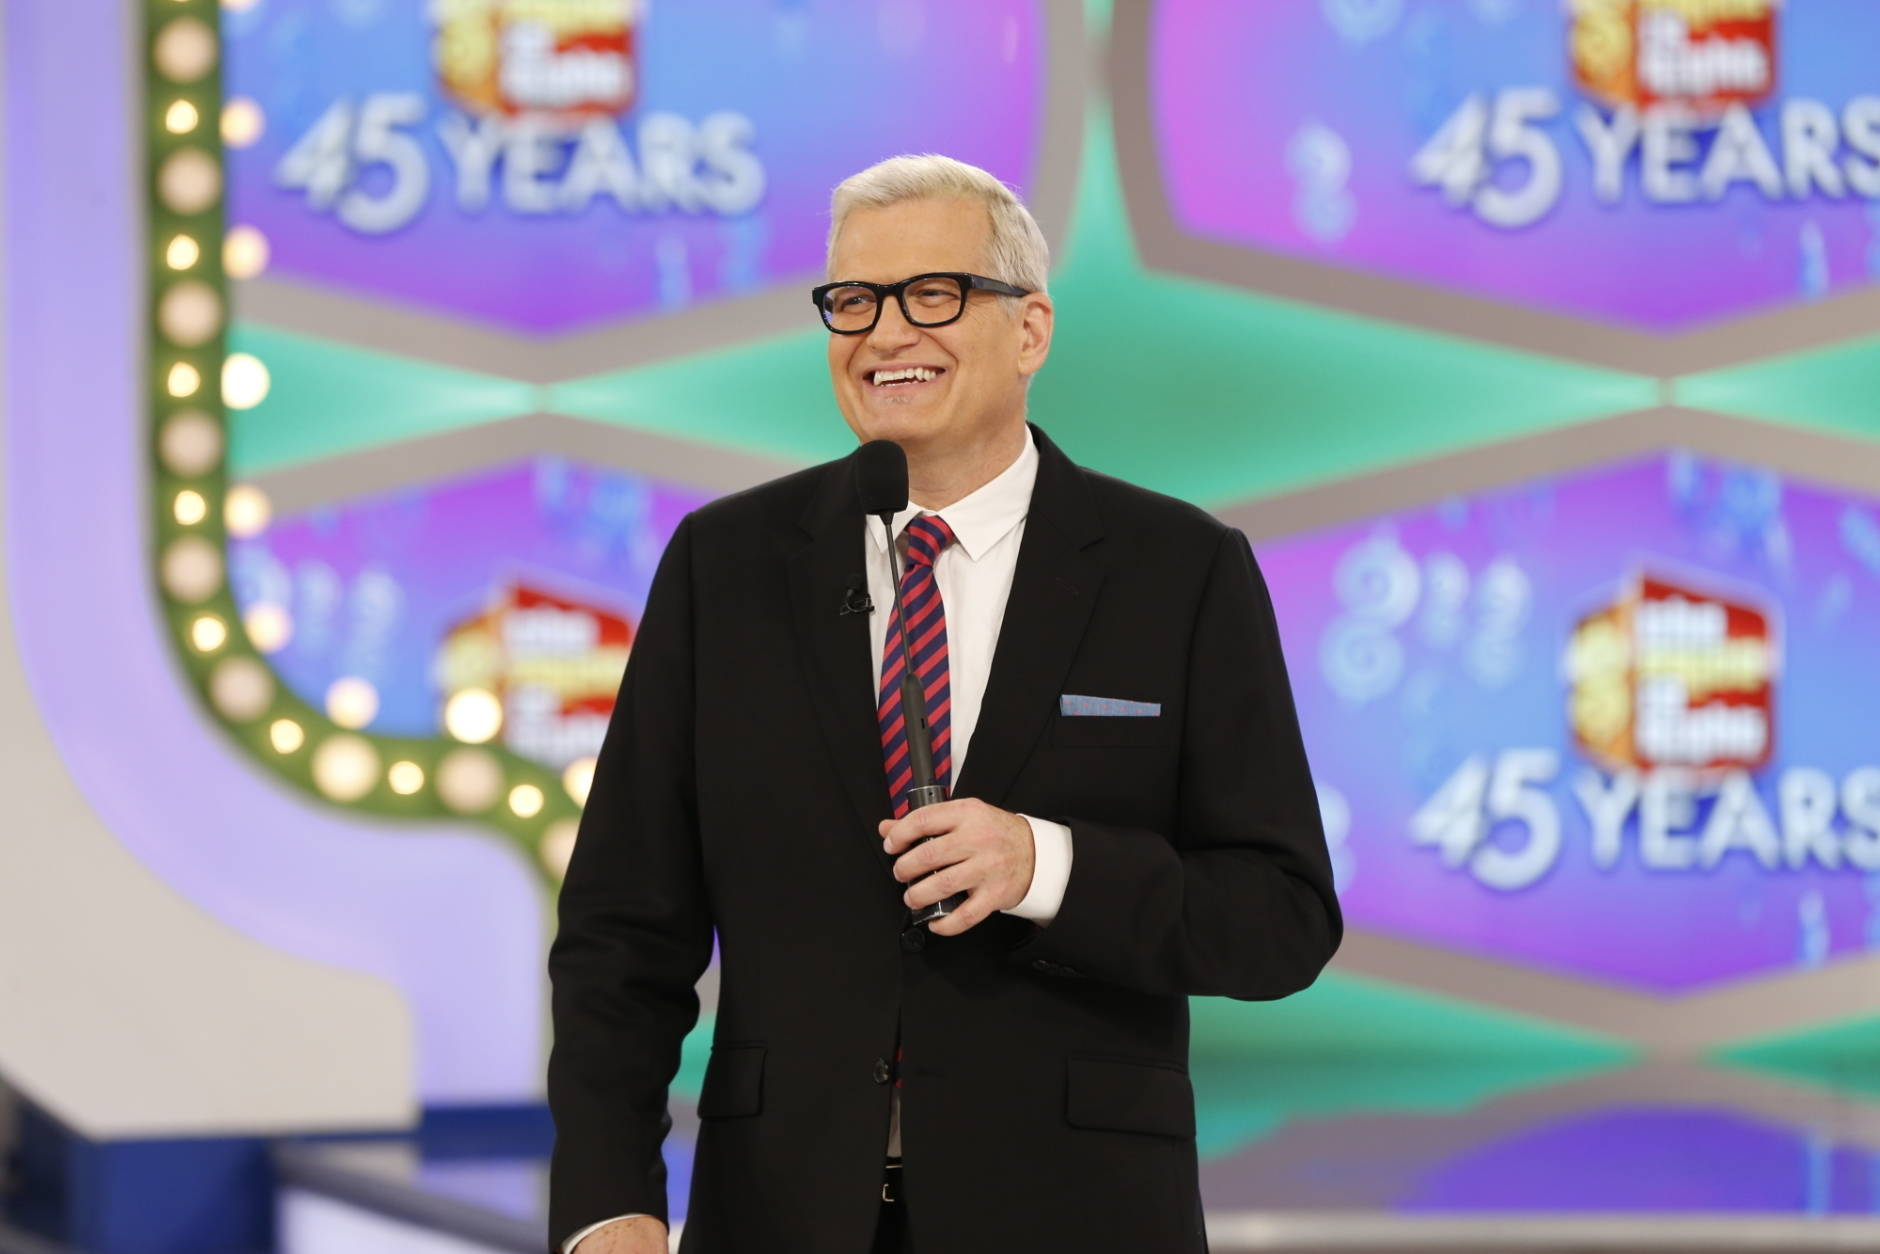 "In this image released by CBS, host Drew Carey appears on the set of ""The Price is Right."" On the episode airing Monday, Oct. 17, 2016, a trio of contestants spun $1 on the game show's famous wheel. The three contestants each landed on different combinations of $1 in a pair of spins during one of the show's showcase showdowns. Carey pumped his fist in the air after the contestants achieved the first three-way tie in the show's history. (Monty Brinton/CBS via AP)"